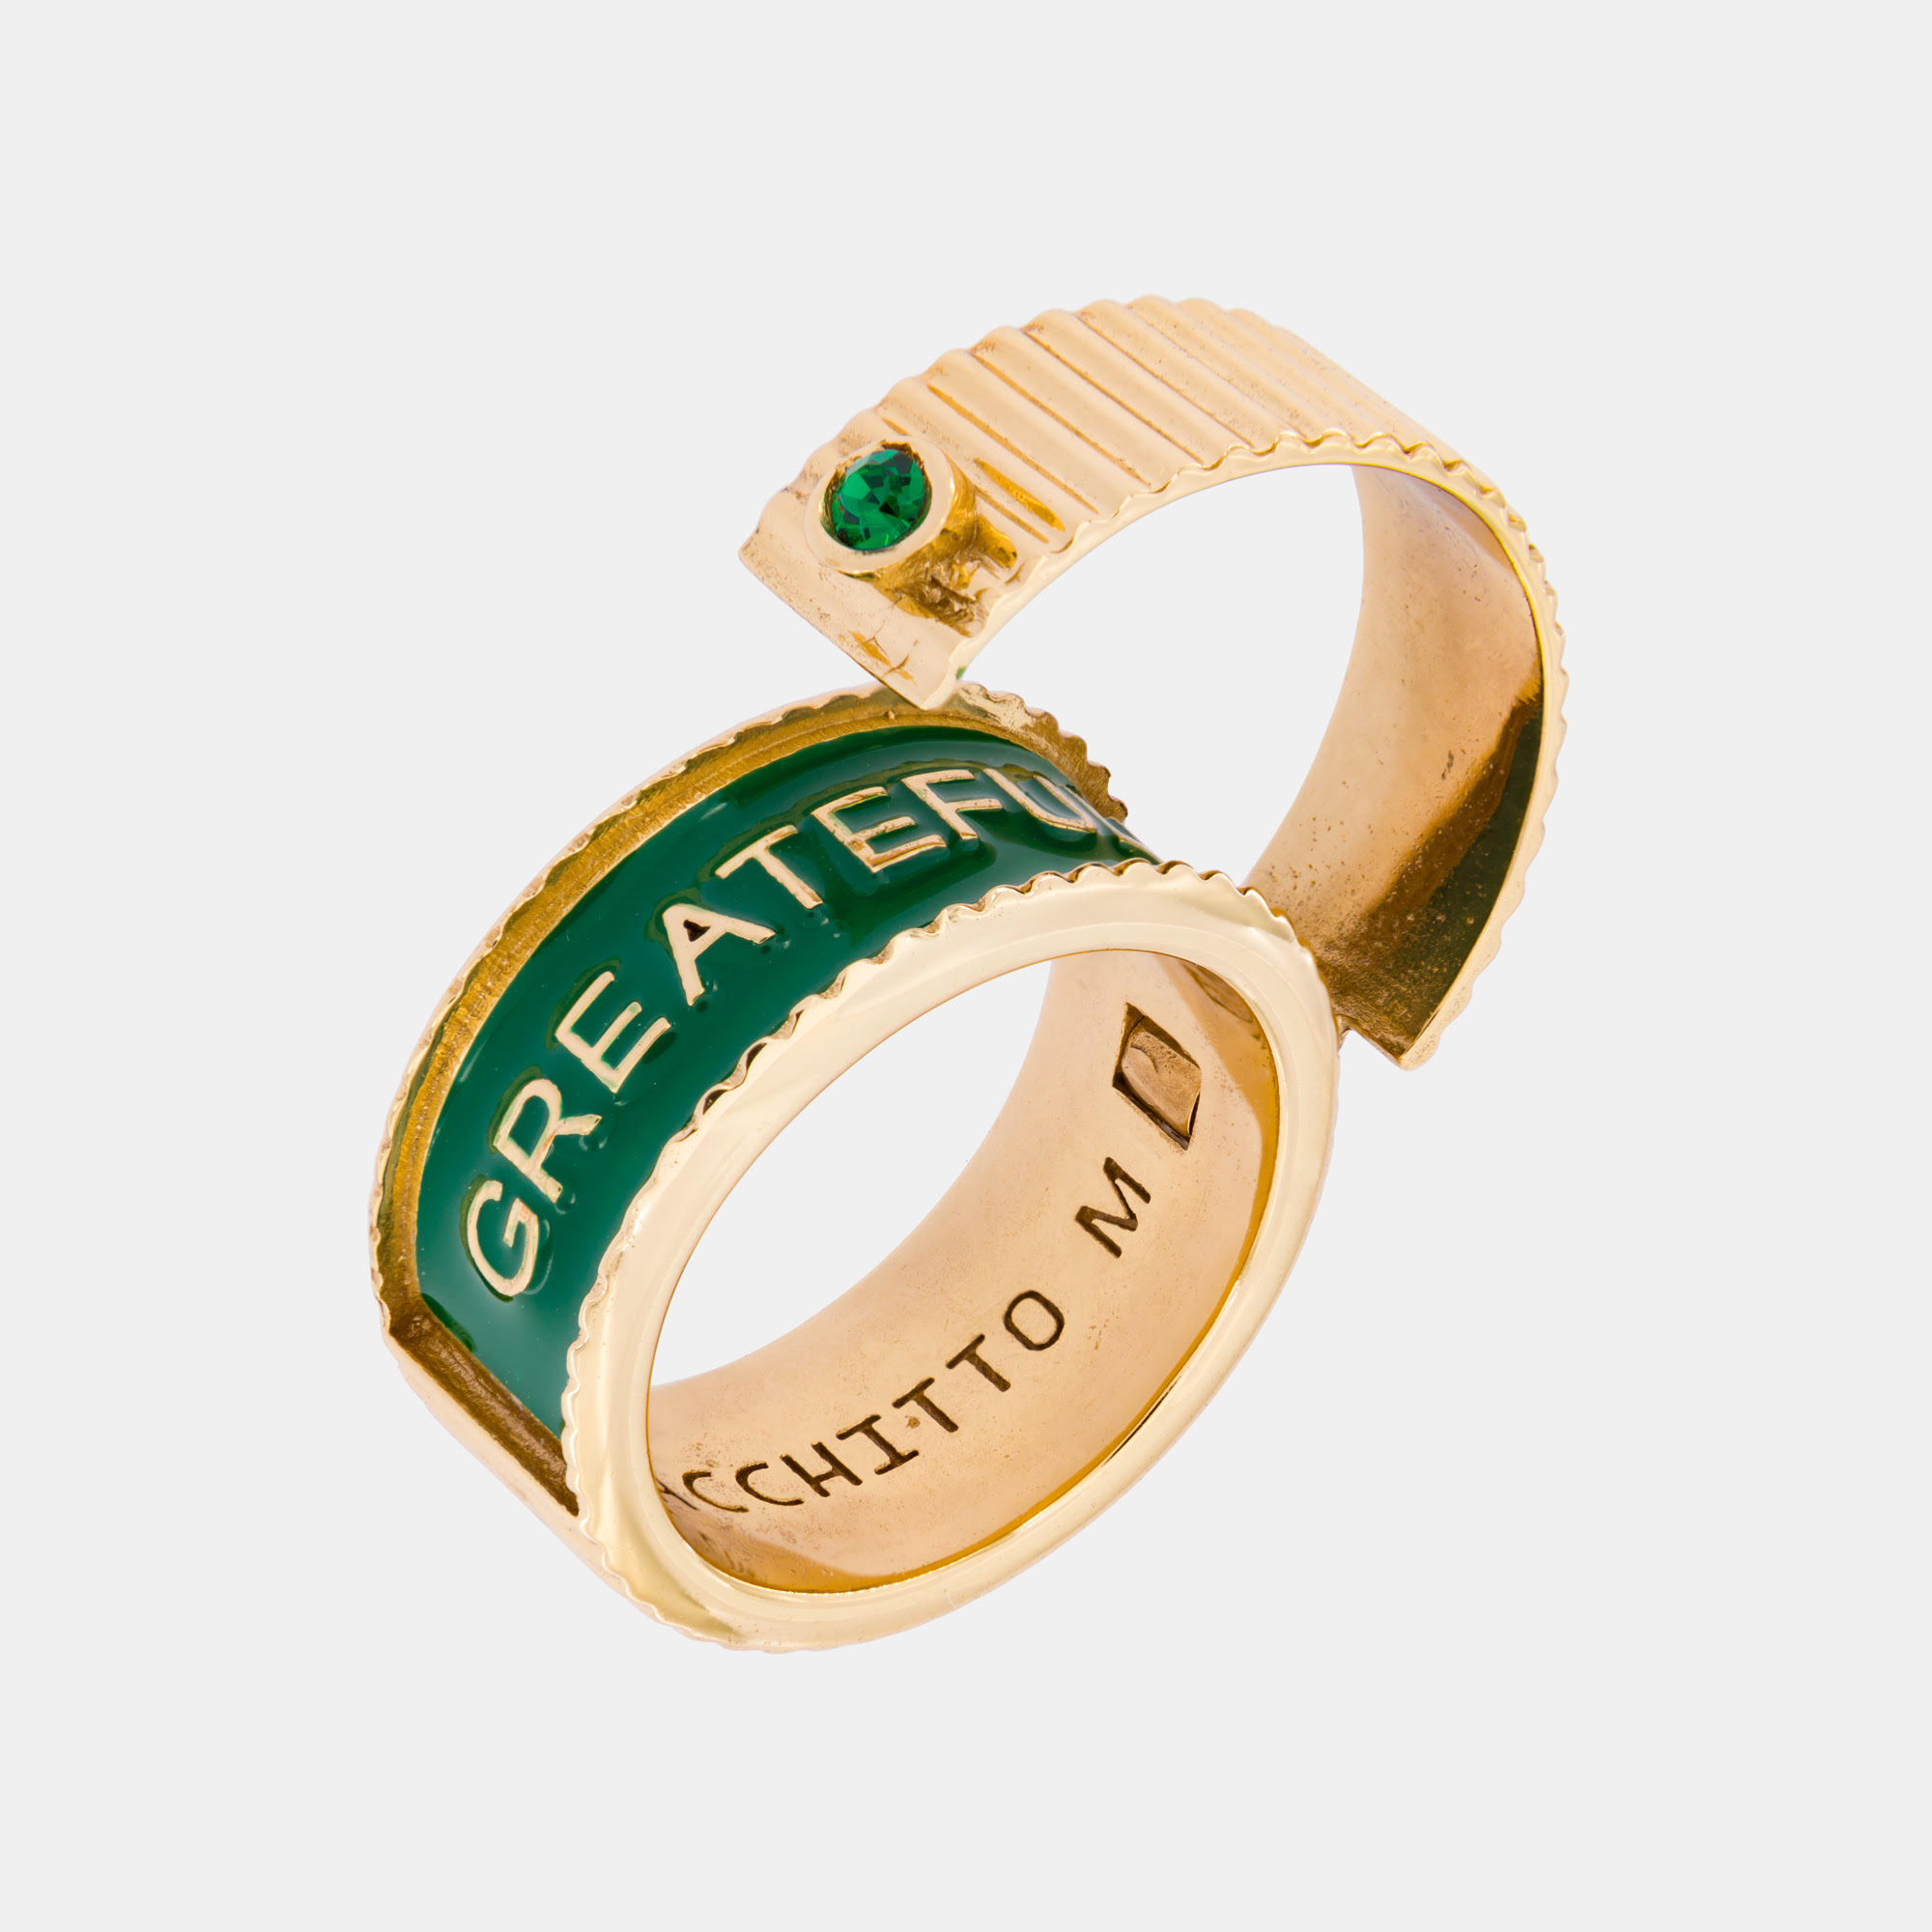 Aperio Greatfull Ring by Acchitto on curated-crowd.com